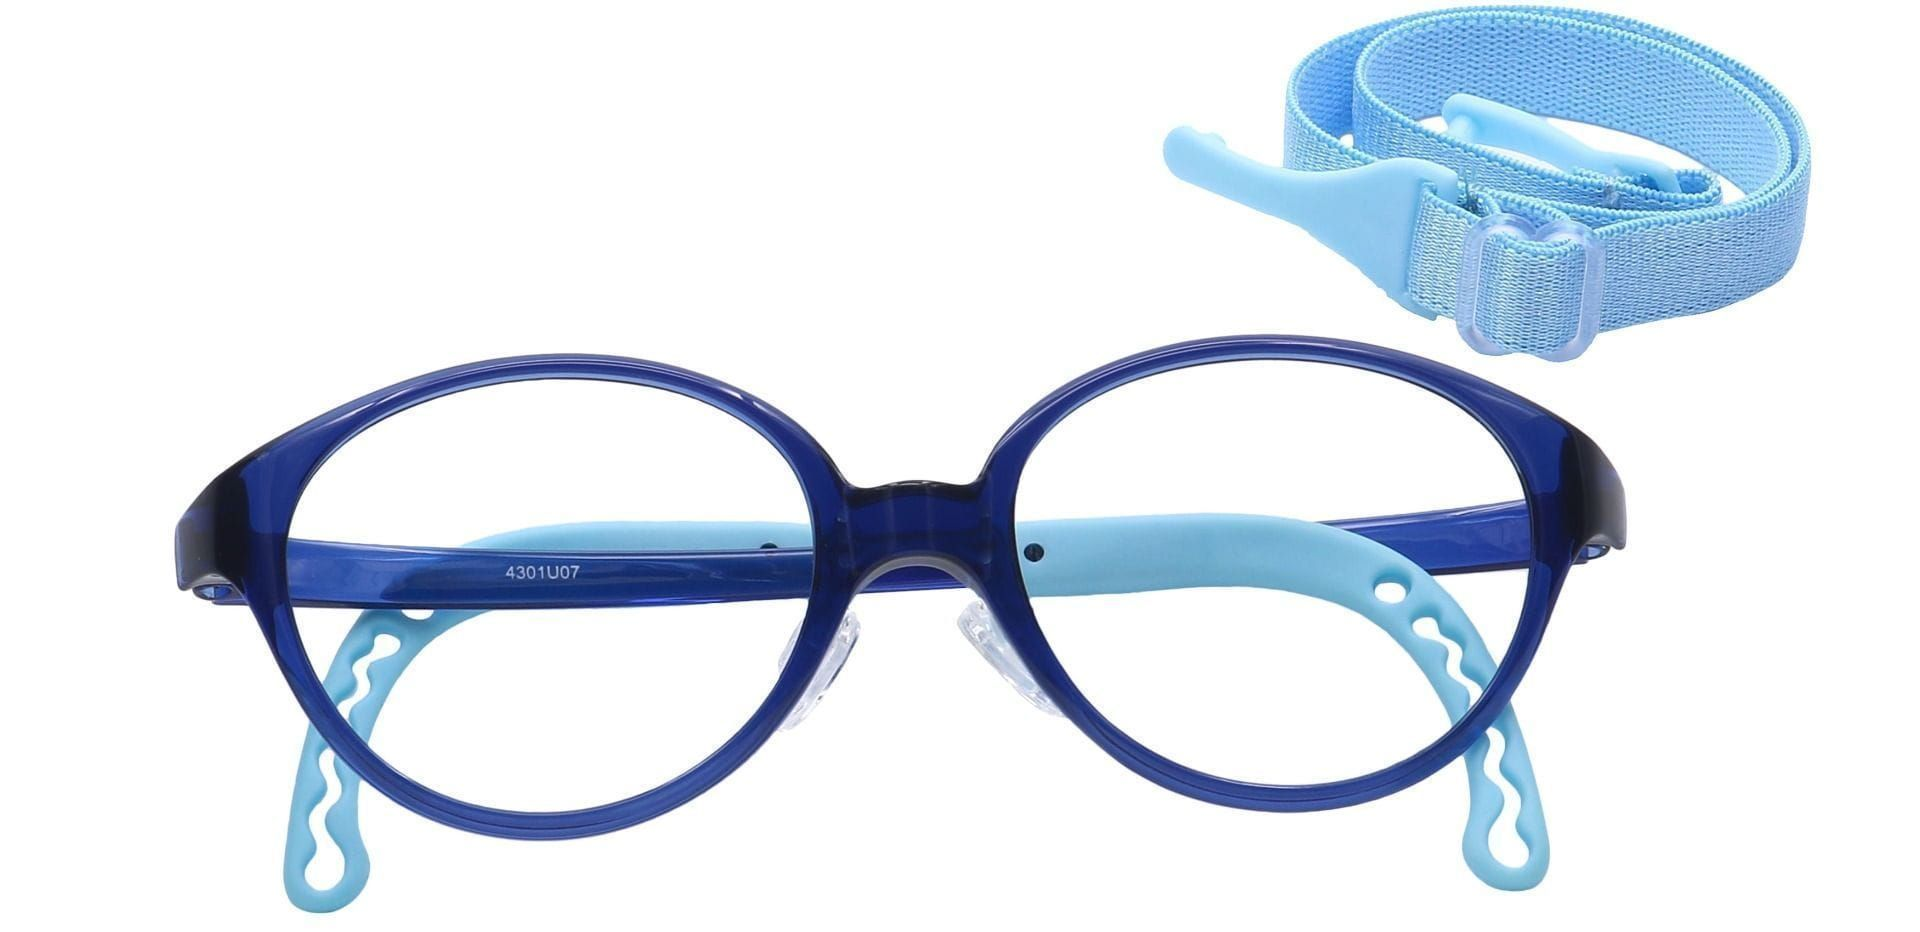 Zany Oval Prescription Glasses - Navy/turquoise